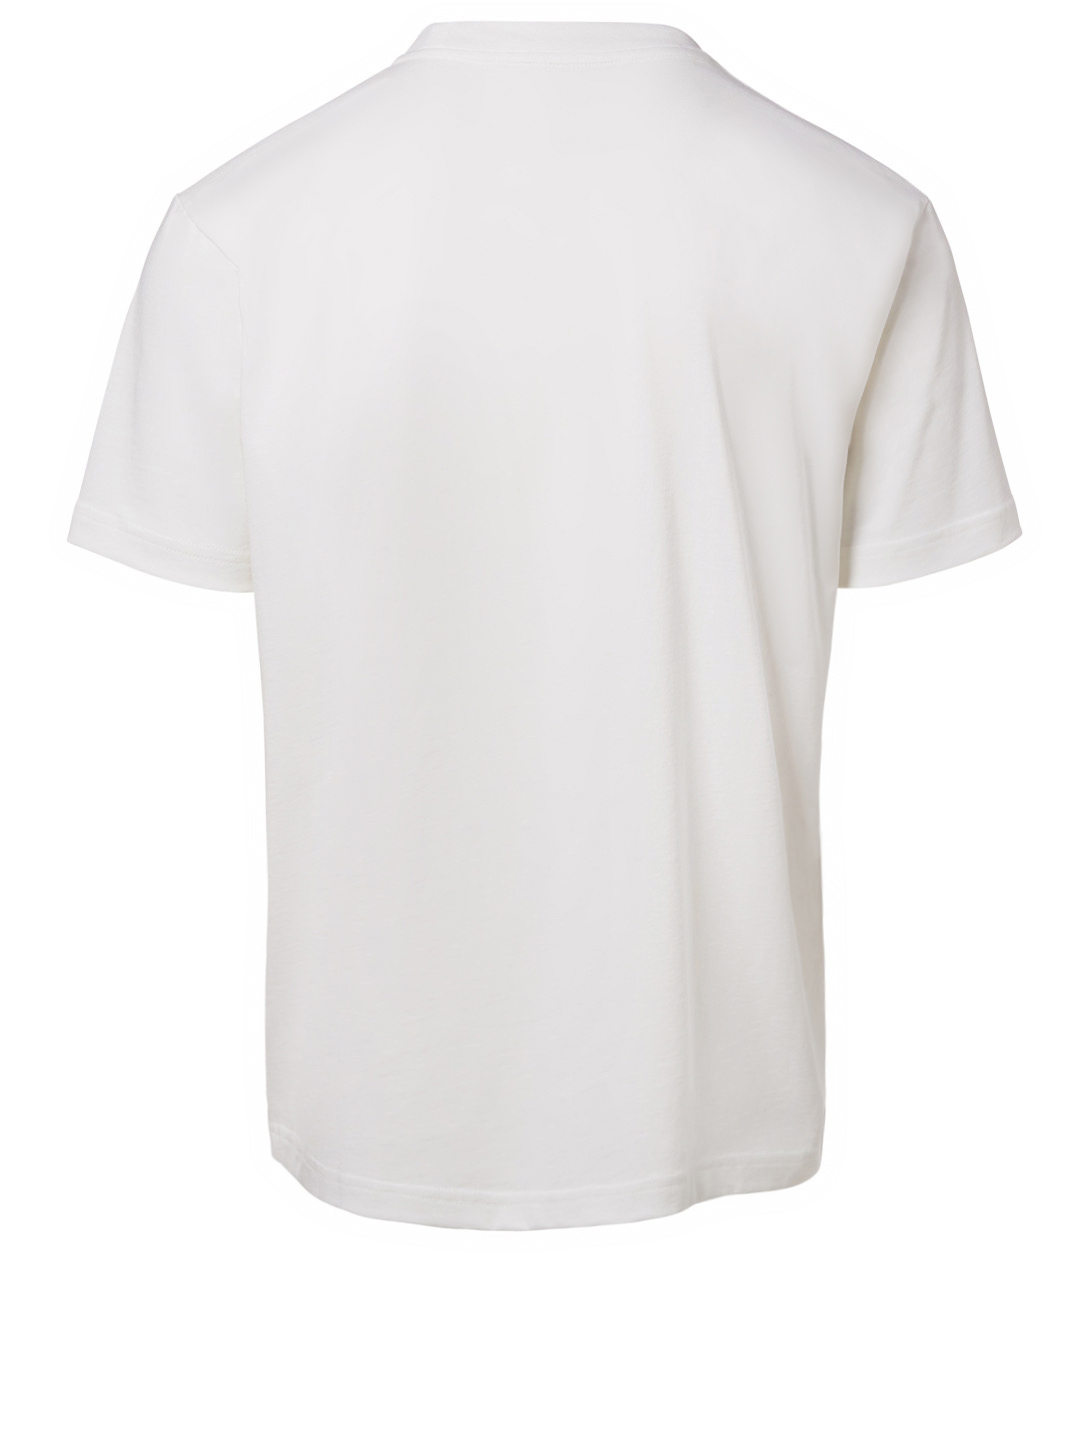 THE ROW Ed T-Shirt Men's White